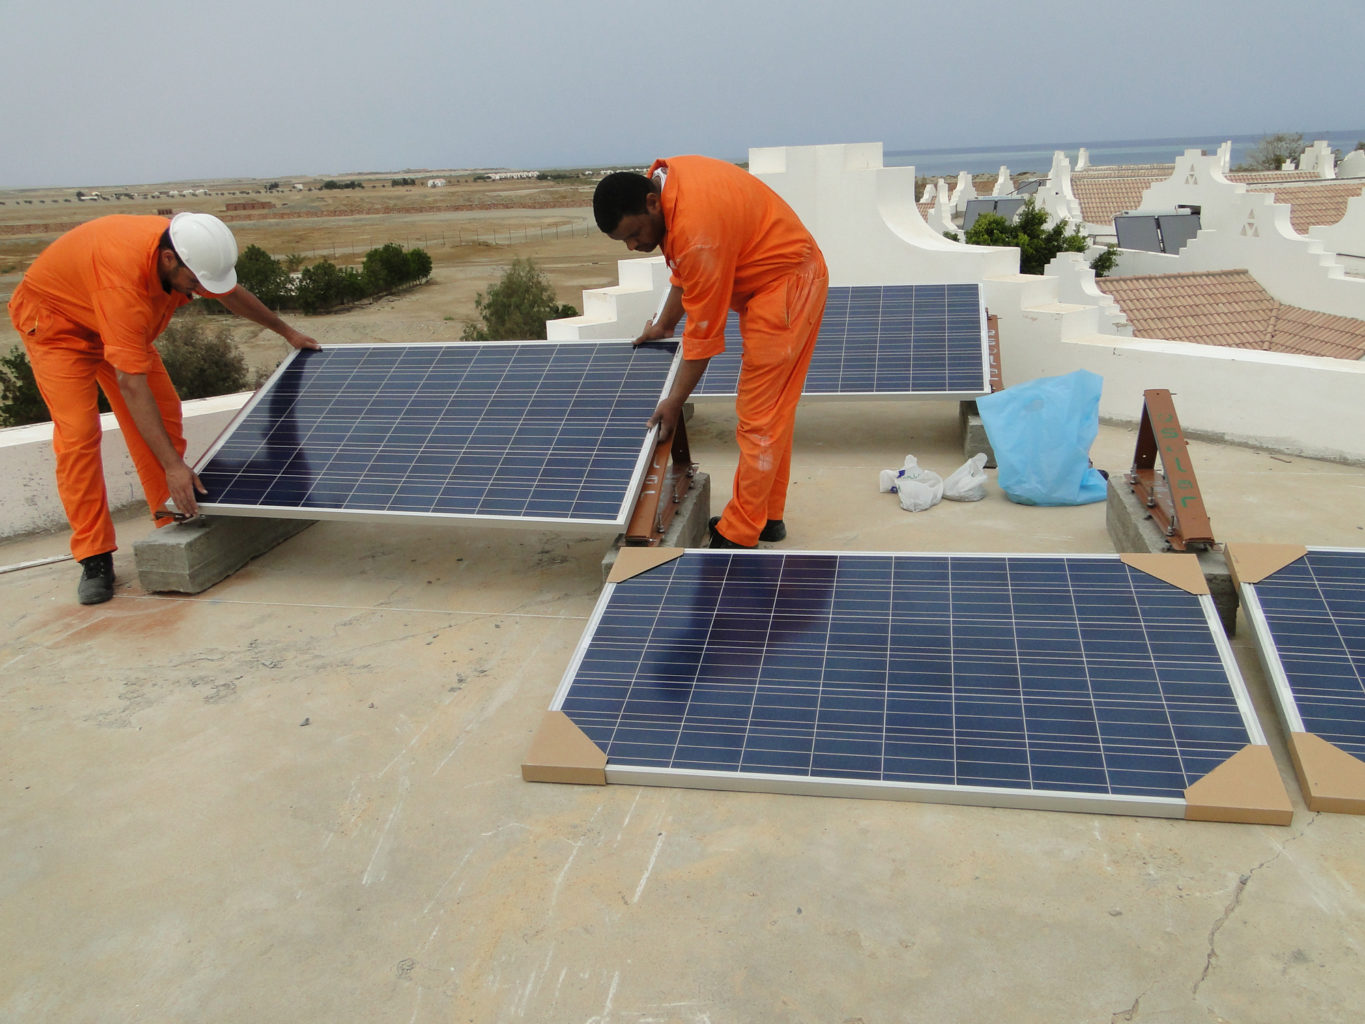 A sustainable sunny solution |The Switchers